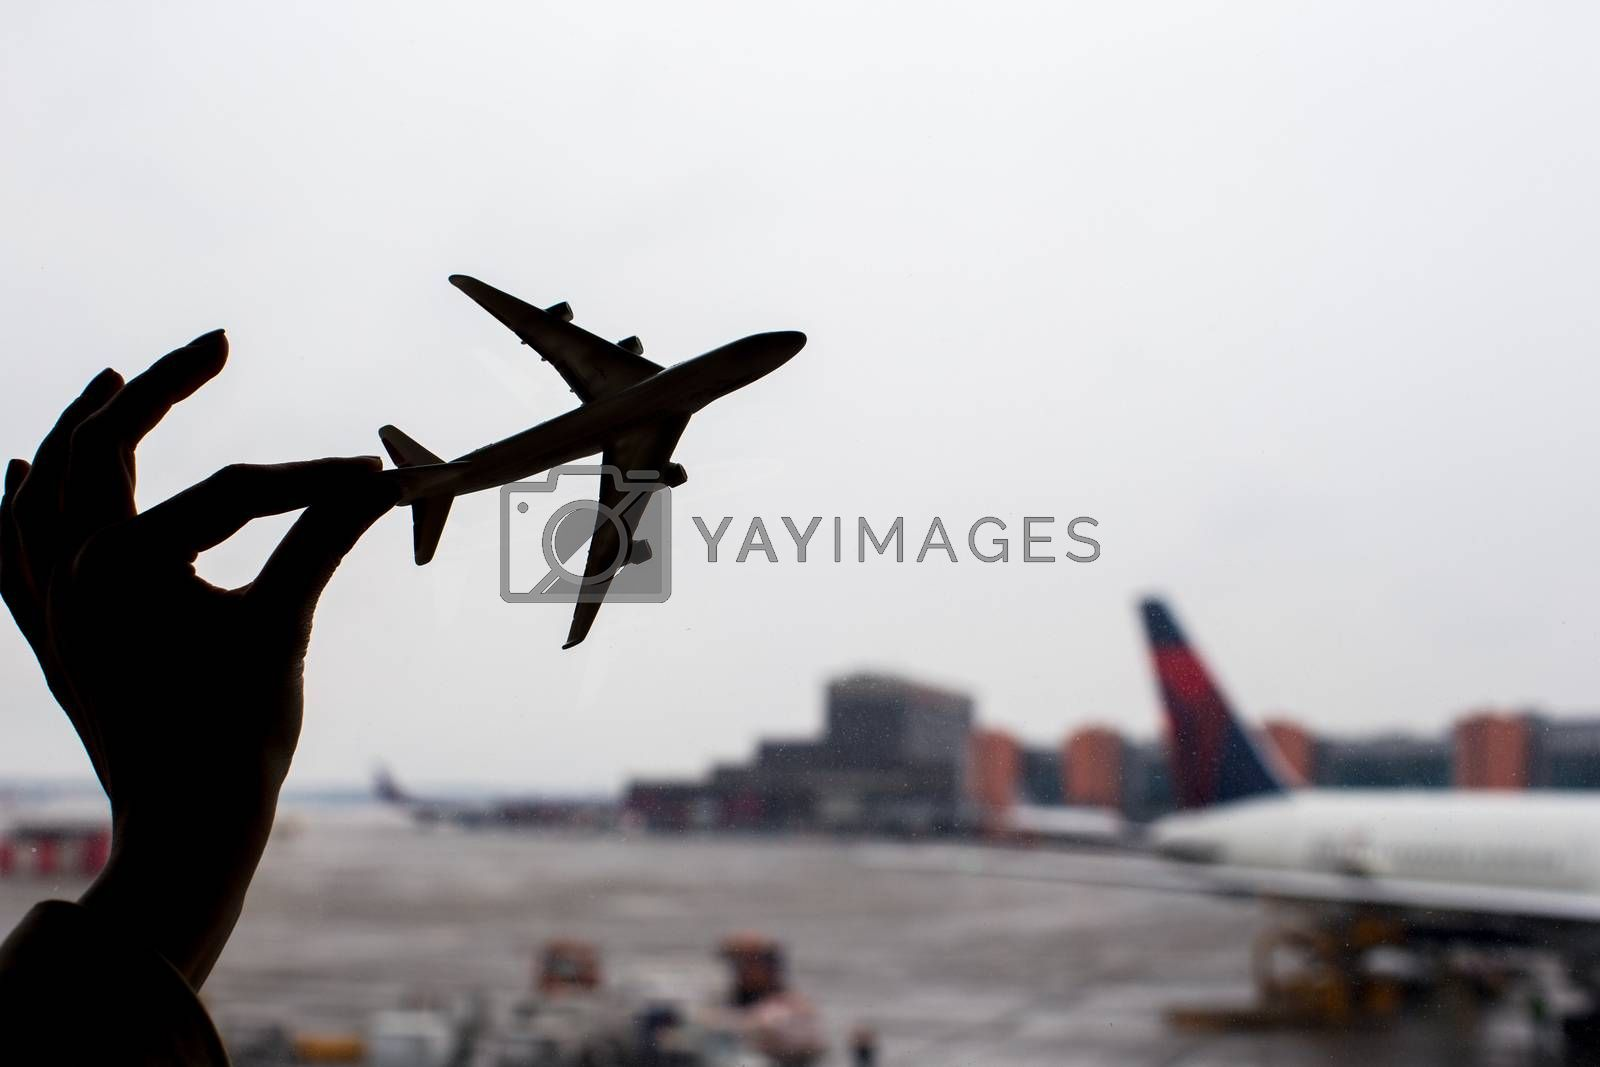 Royalty free image of Silhouette of a small airplane model on airport background by travnikovstudio